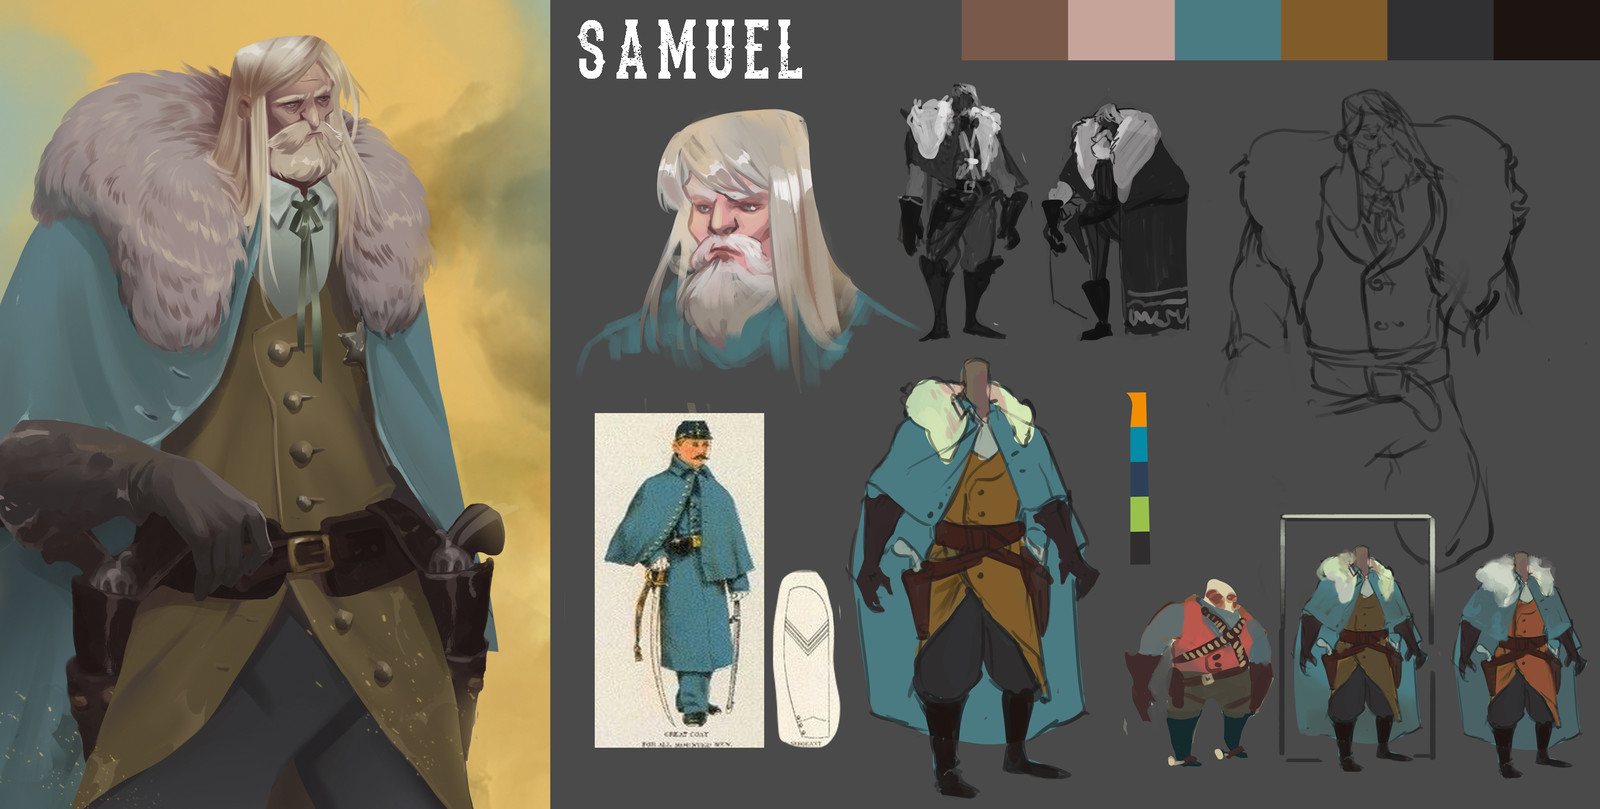 Part of the process followed to design Samuel.